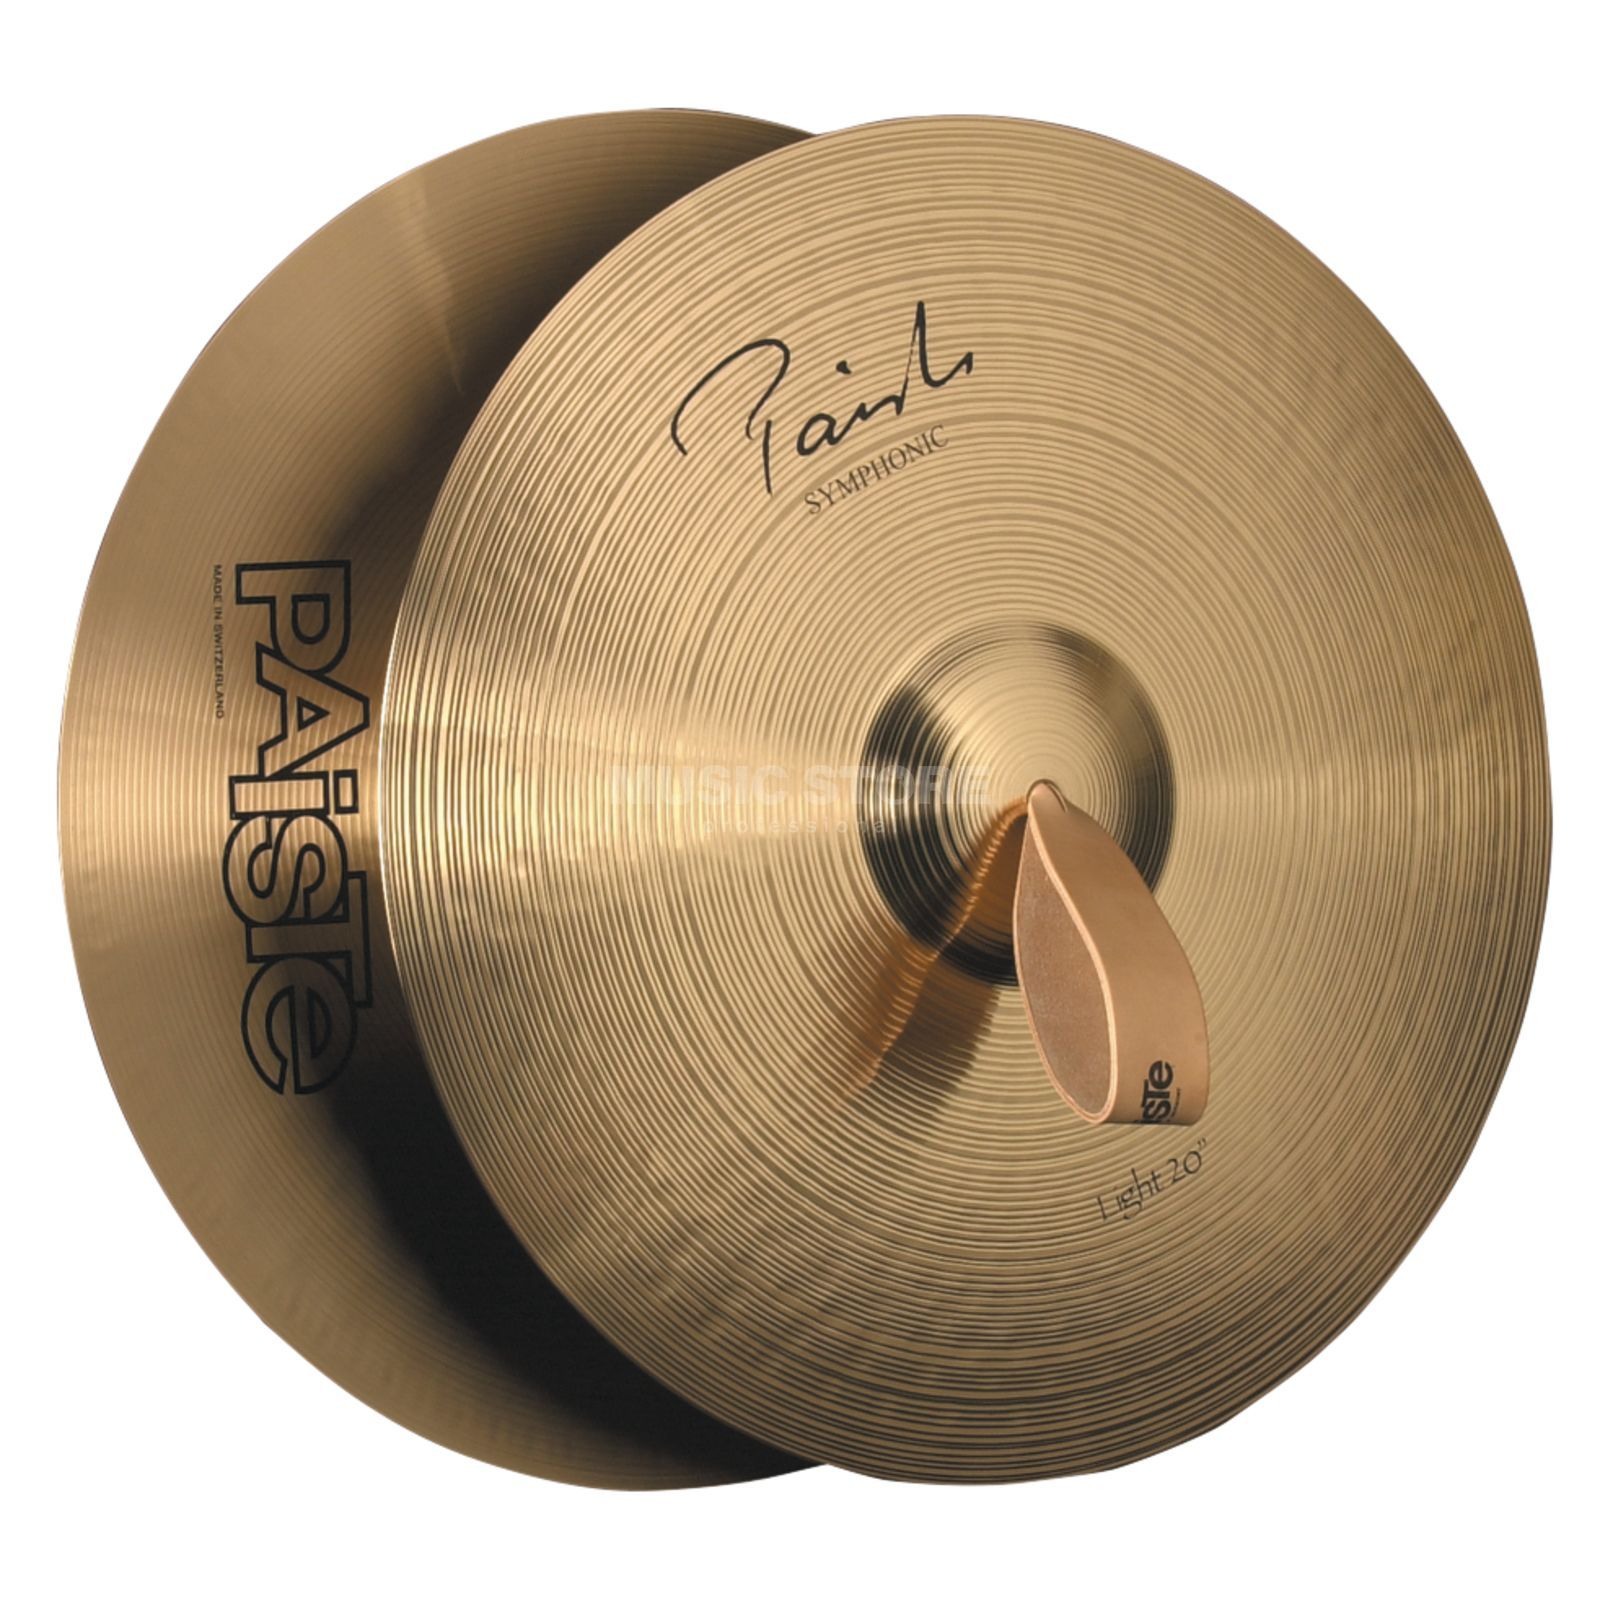 "Paiste Symphonic Orchesterbecken 20"", Medium Light Produktbild"